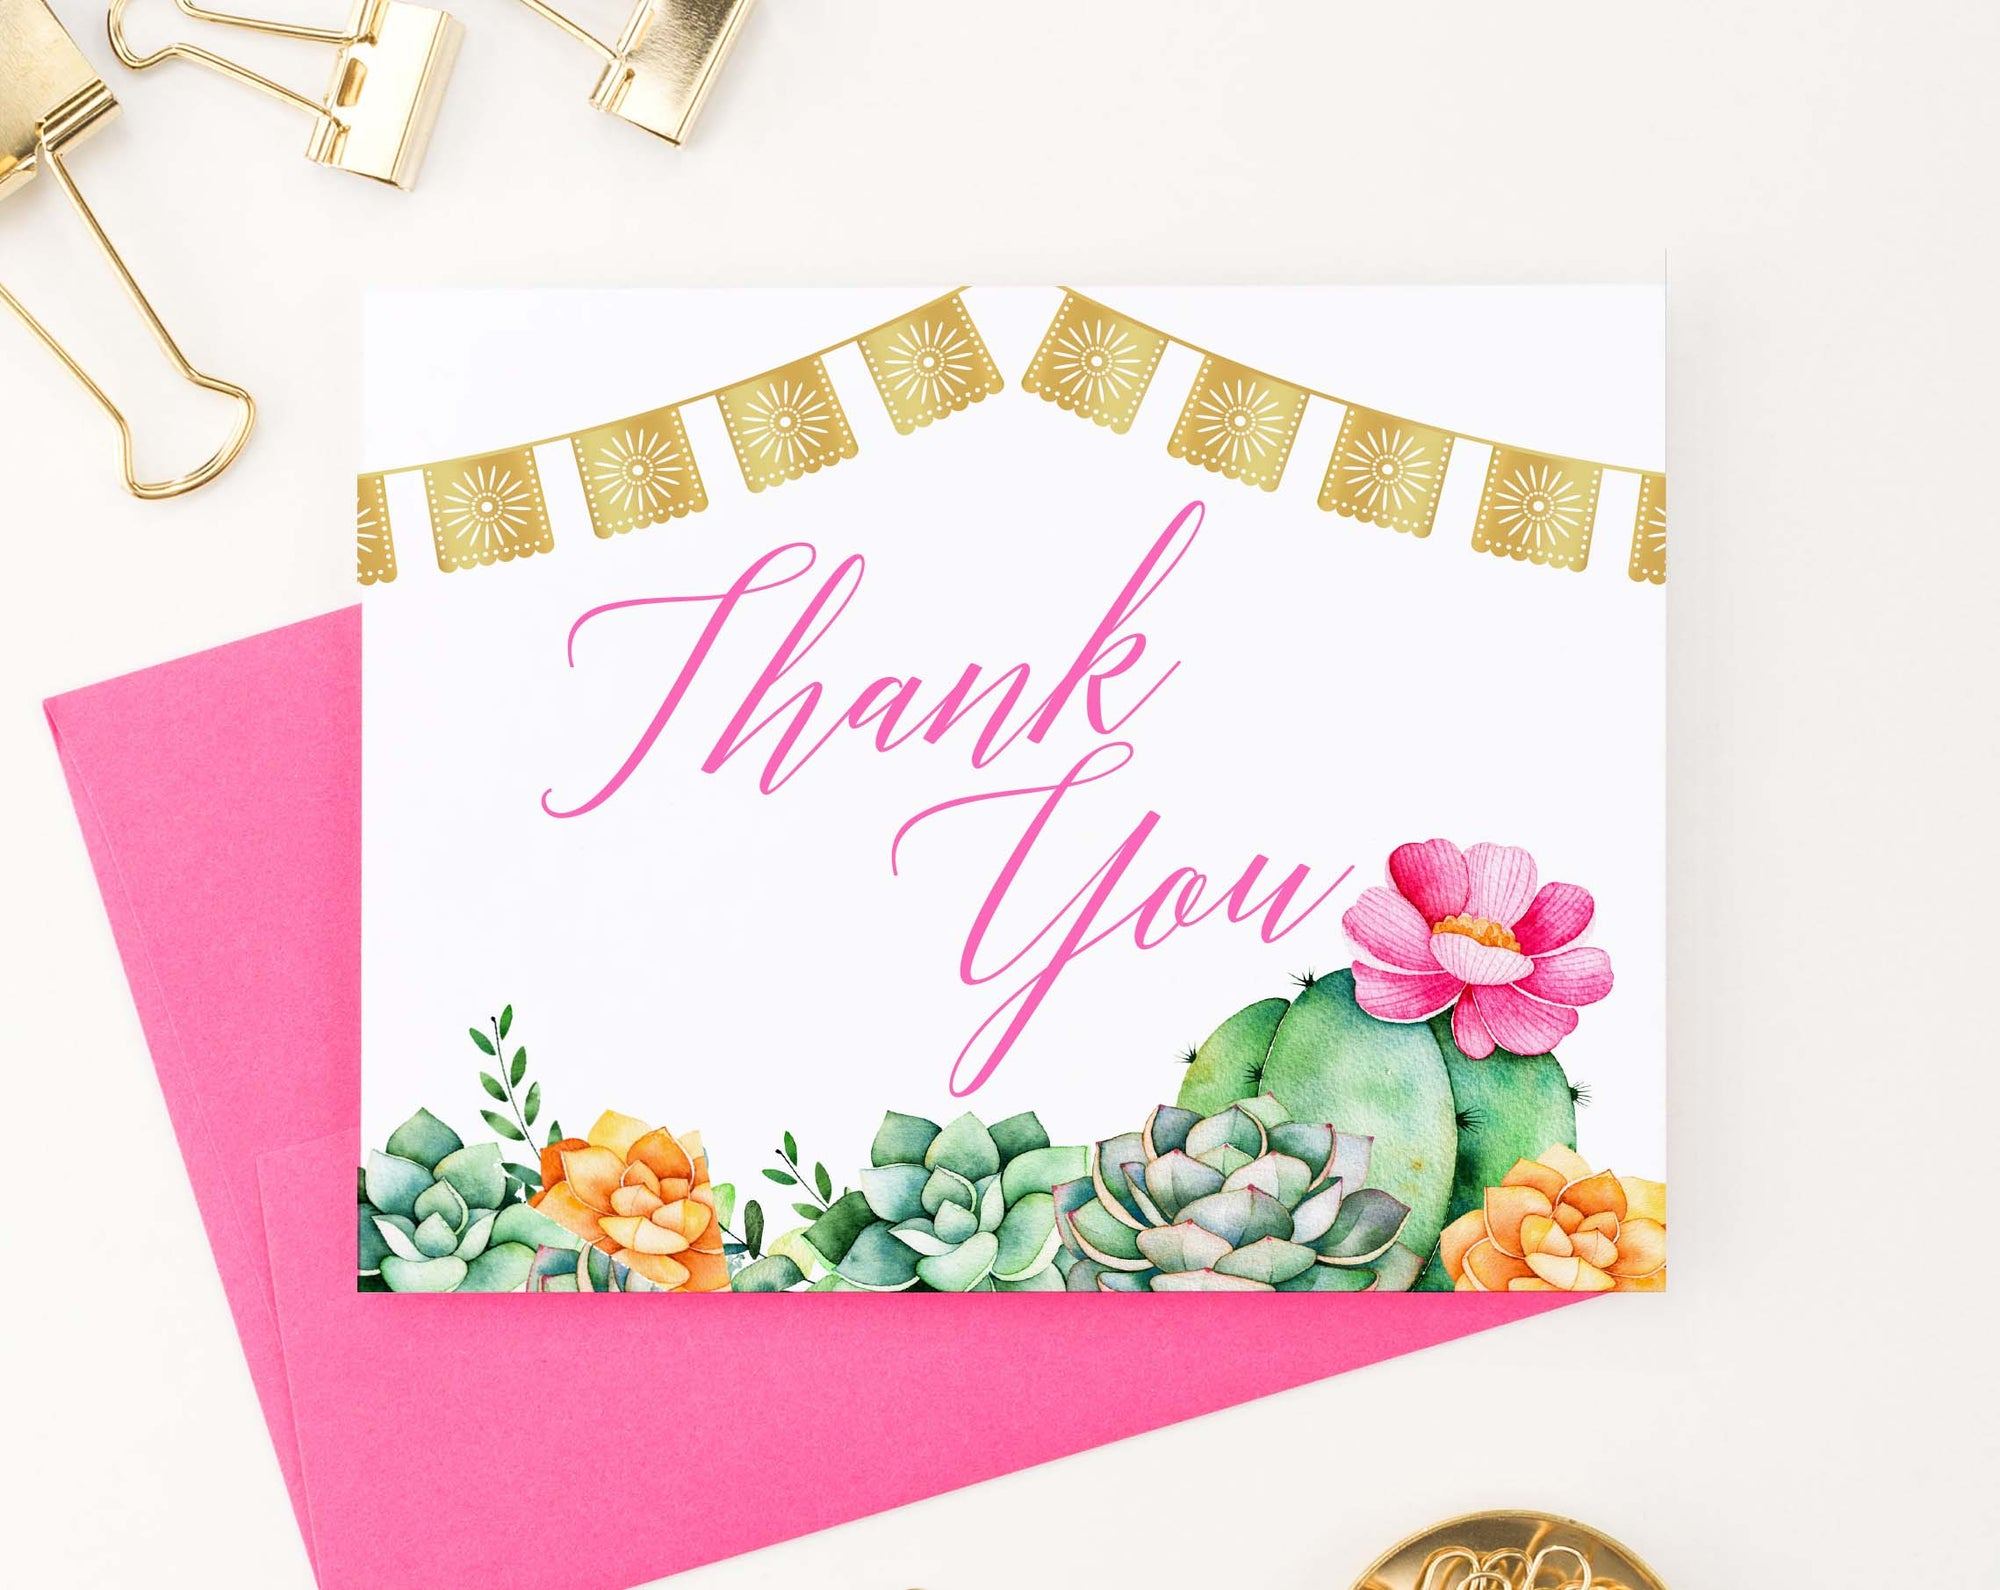 TY031 fiesta cactus thank you notes for bridal shower wedding elegant women